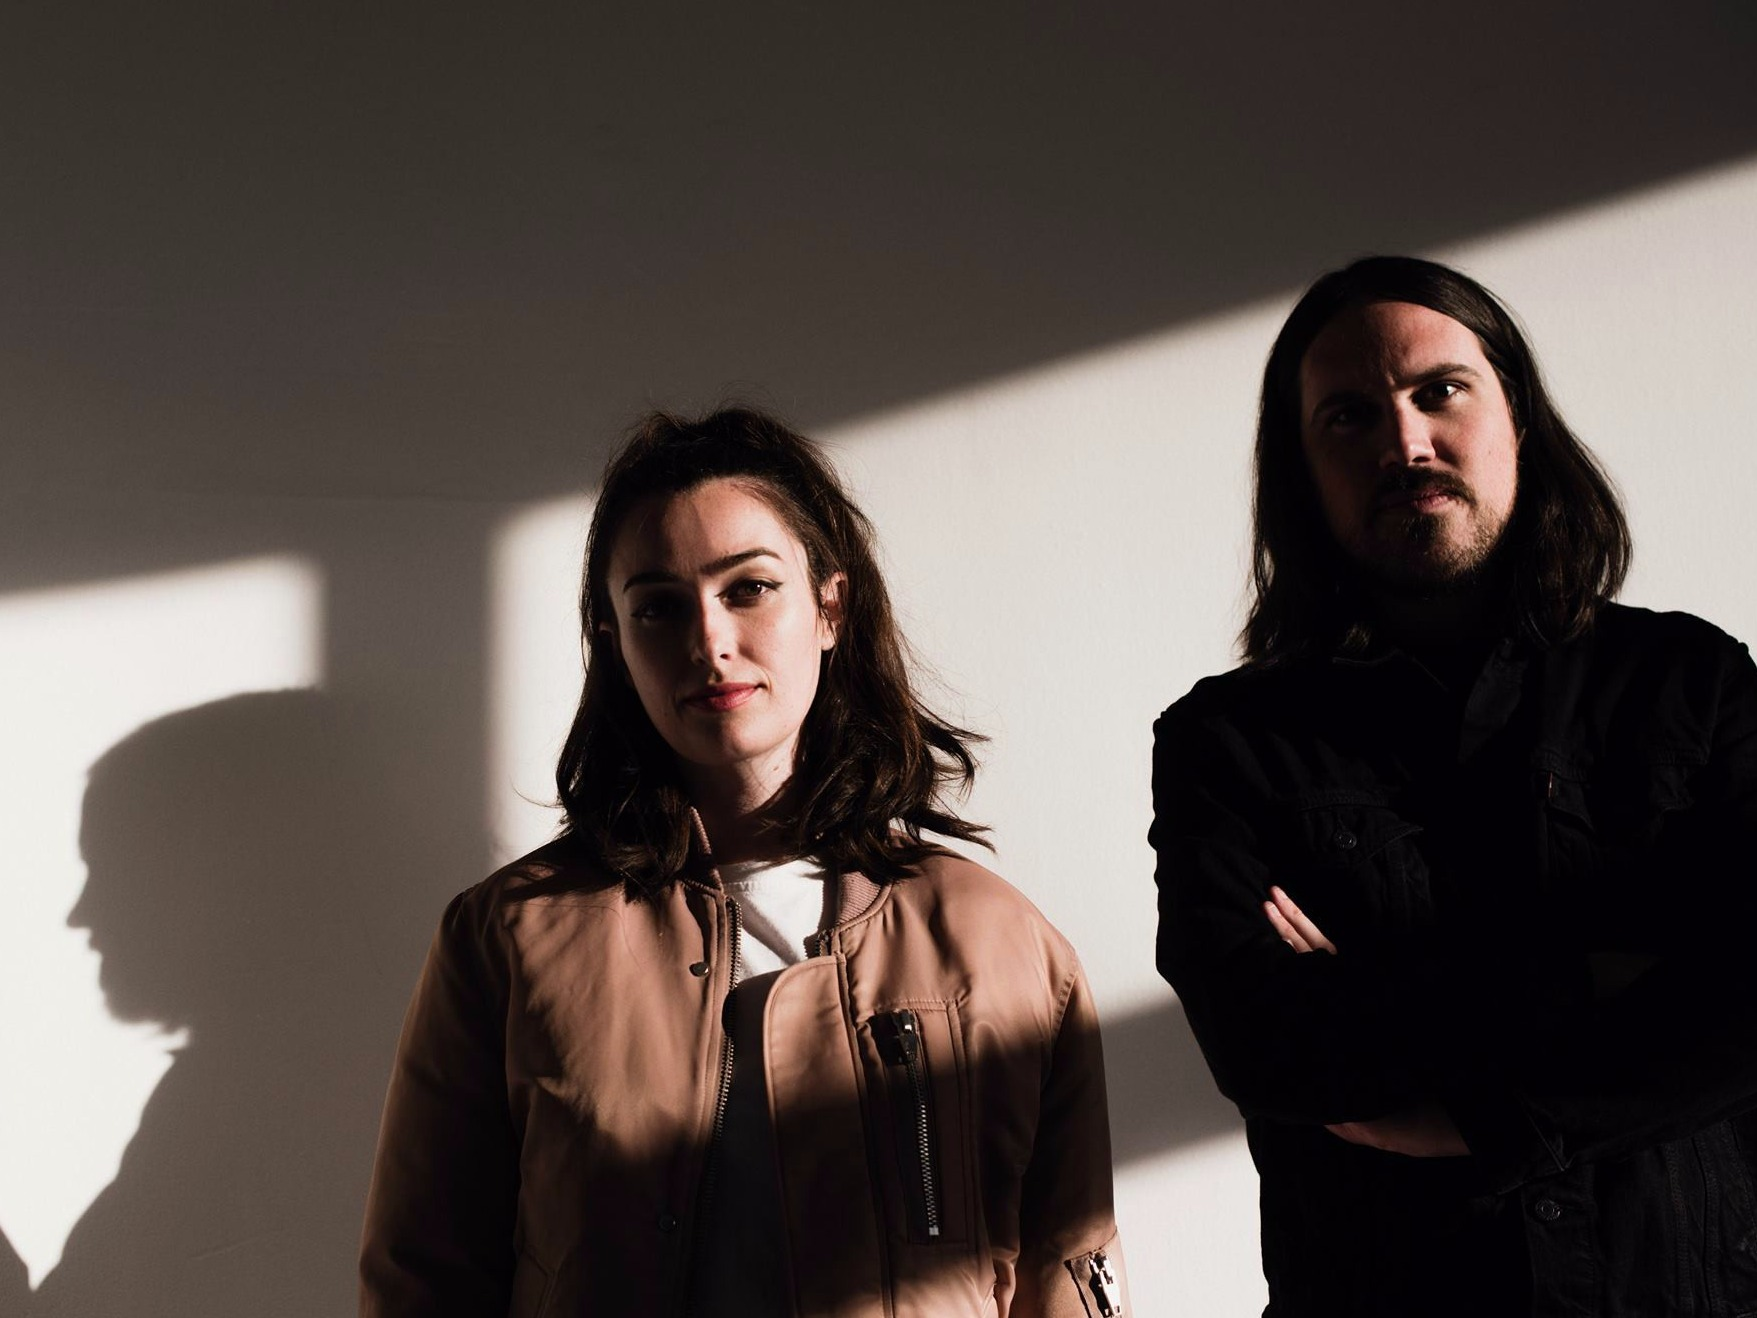 THROWBACK THURSDAY: A Static Session with Cults